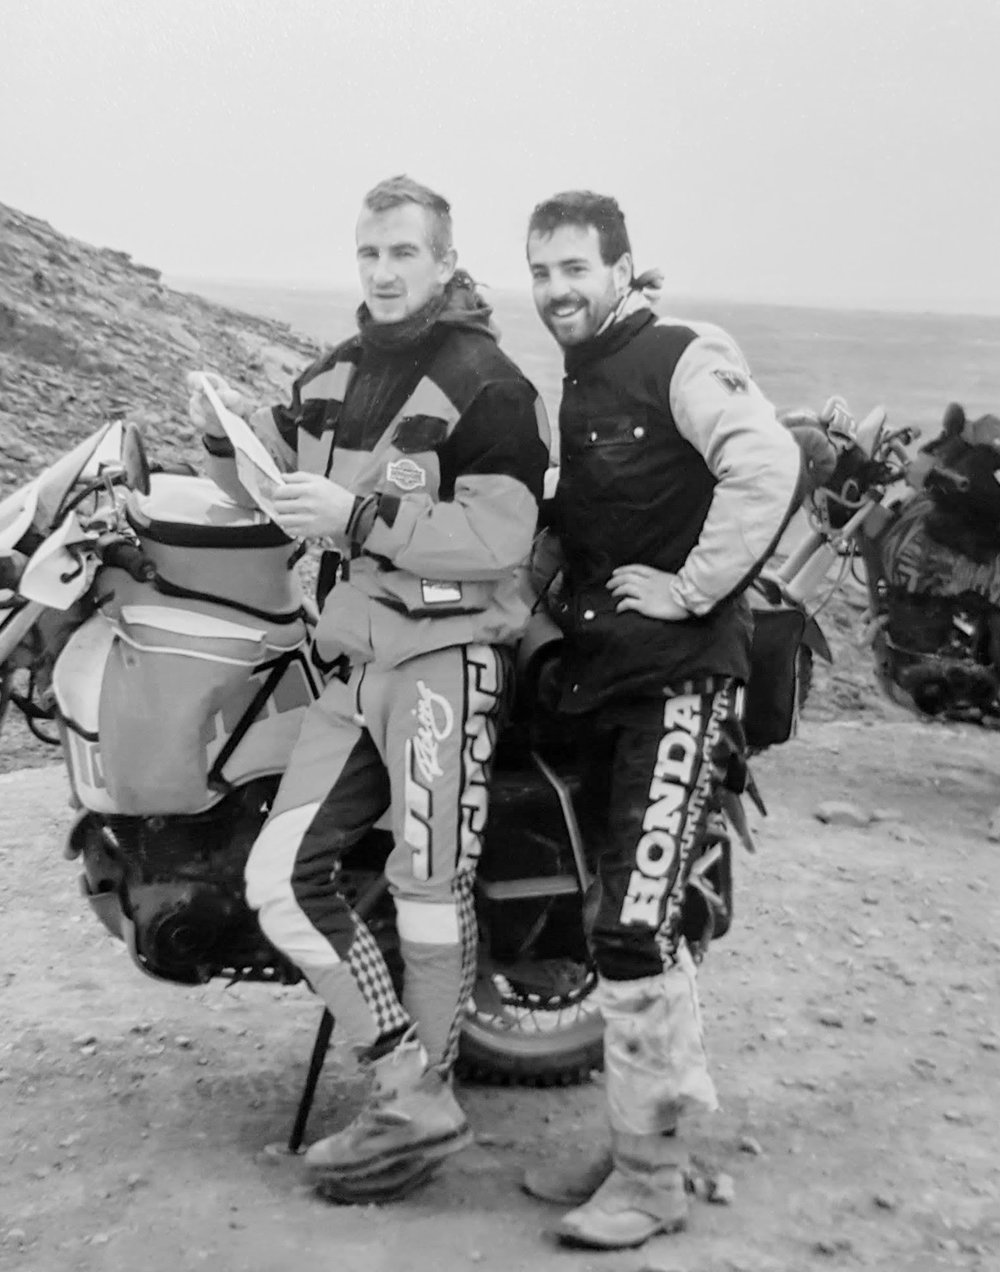 Mark & Pitsch checking the map in the middle of the Sahara - 1991